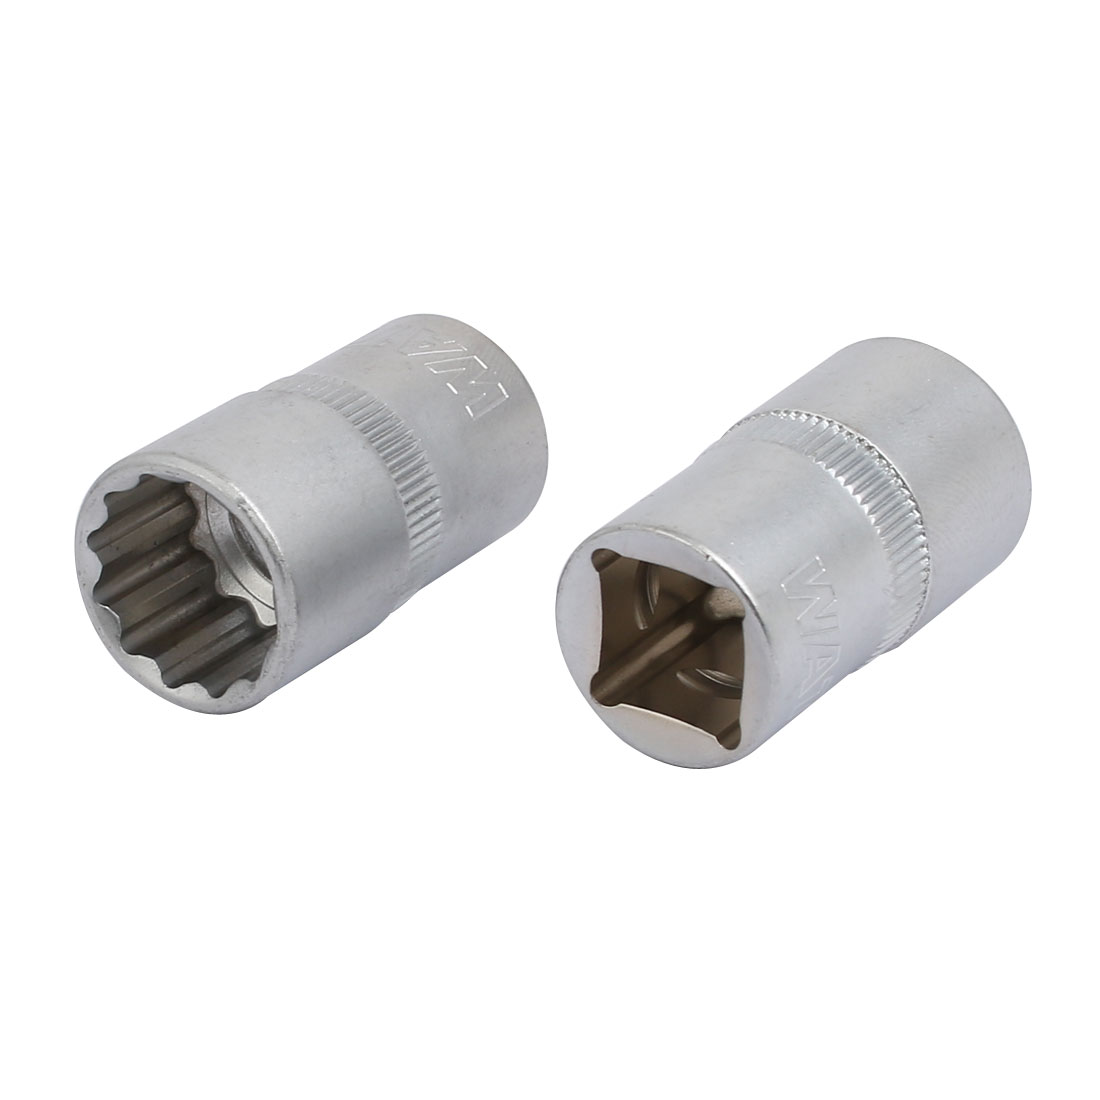 1/2-inch Square Drive 16mm 12-Point Shallow Impact Socket Silver Tone 2pcs